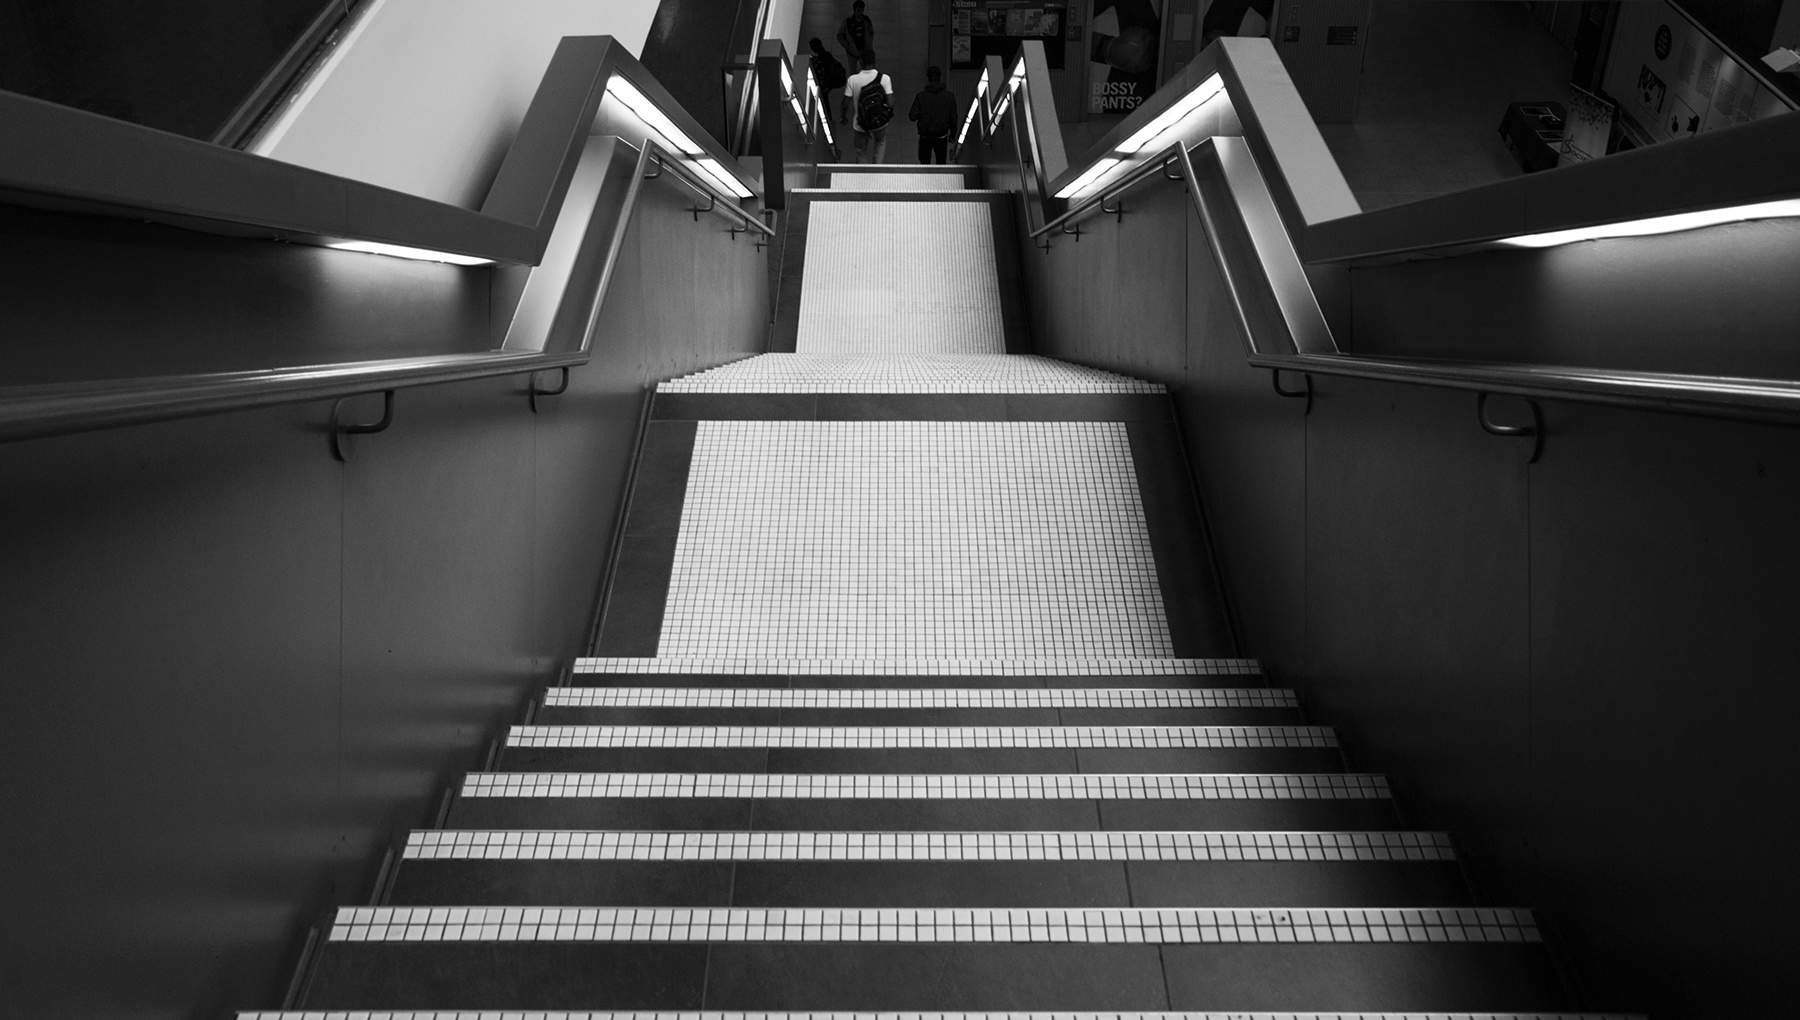 20151104. Take the stairs at the University of Toronto Scarborou